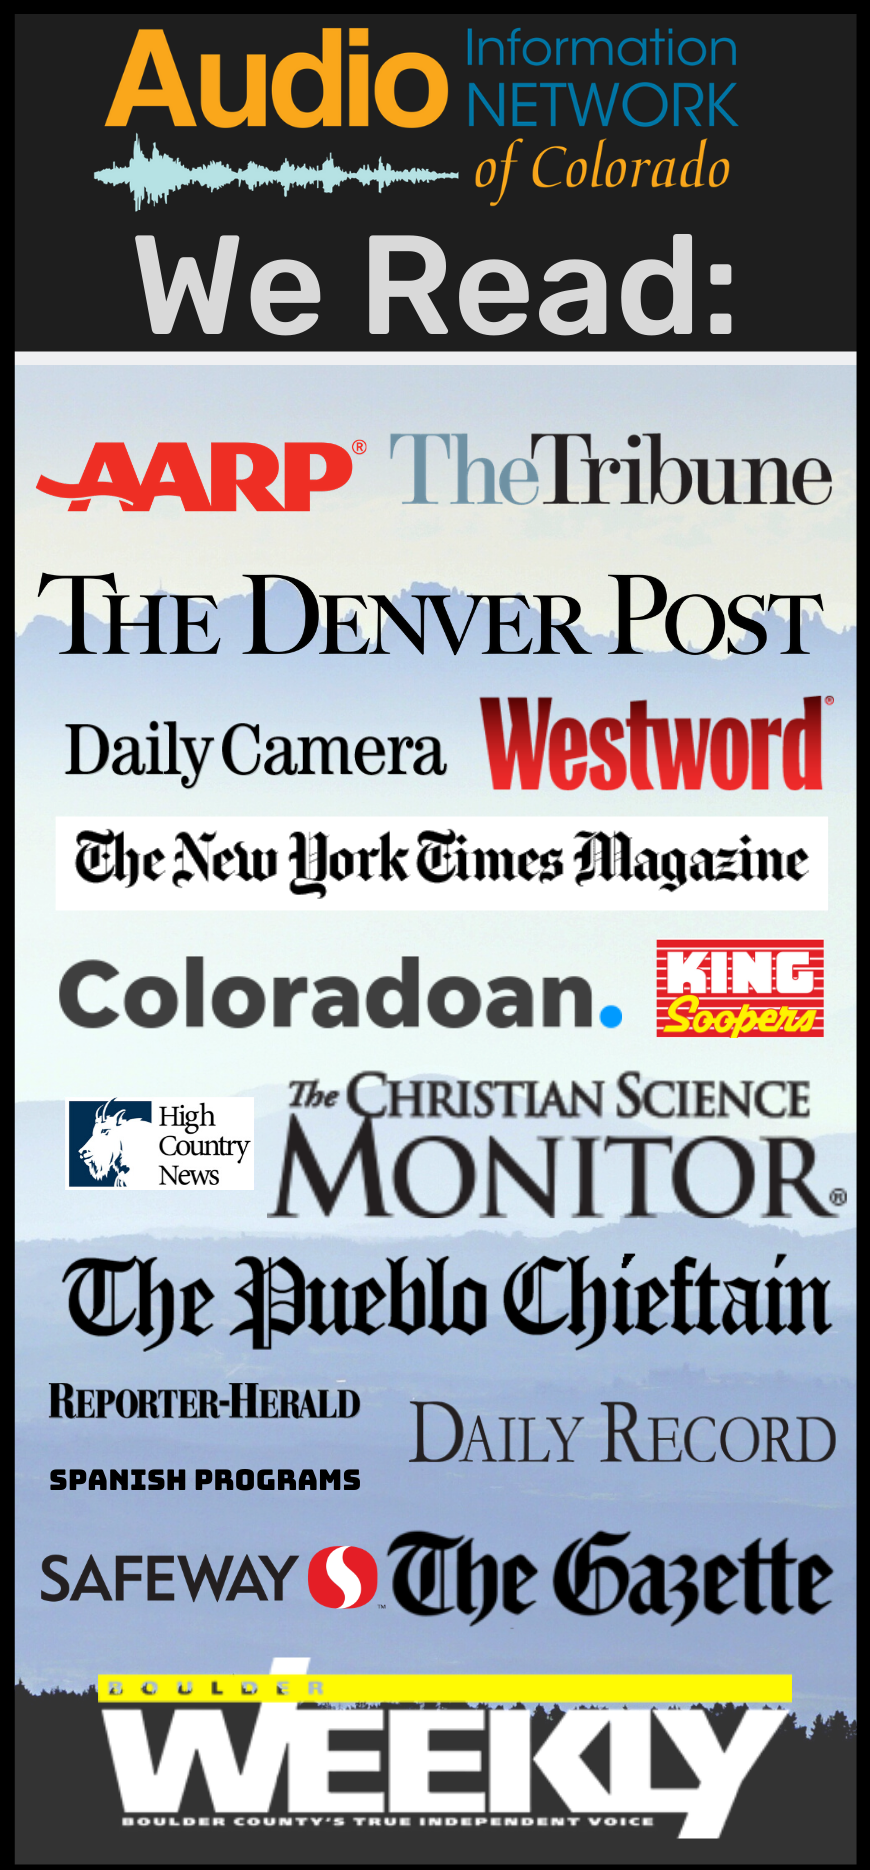 We read AARP, The tribune, the denver post, the daily camera, westword, new york times, coloradoan, king soopers grocery ads, the christianc science monitor, the pueblo chieftain, and more.